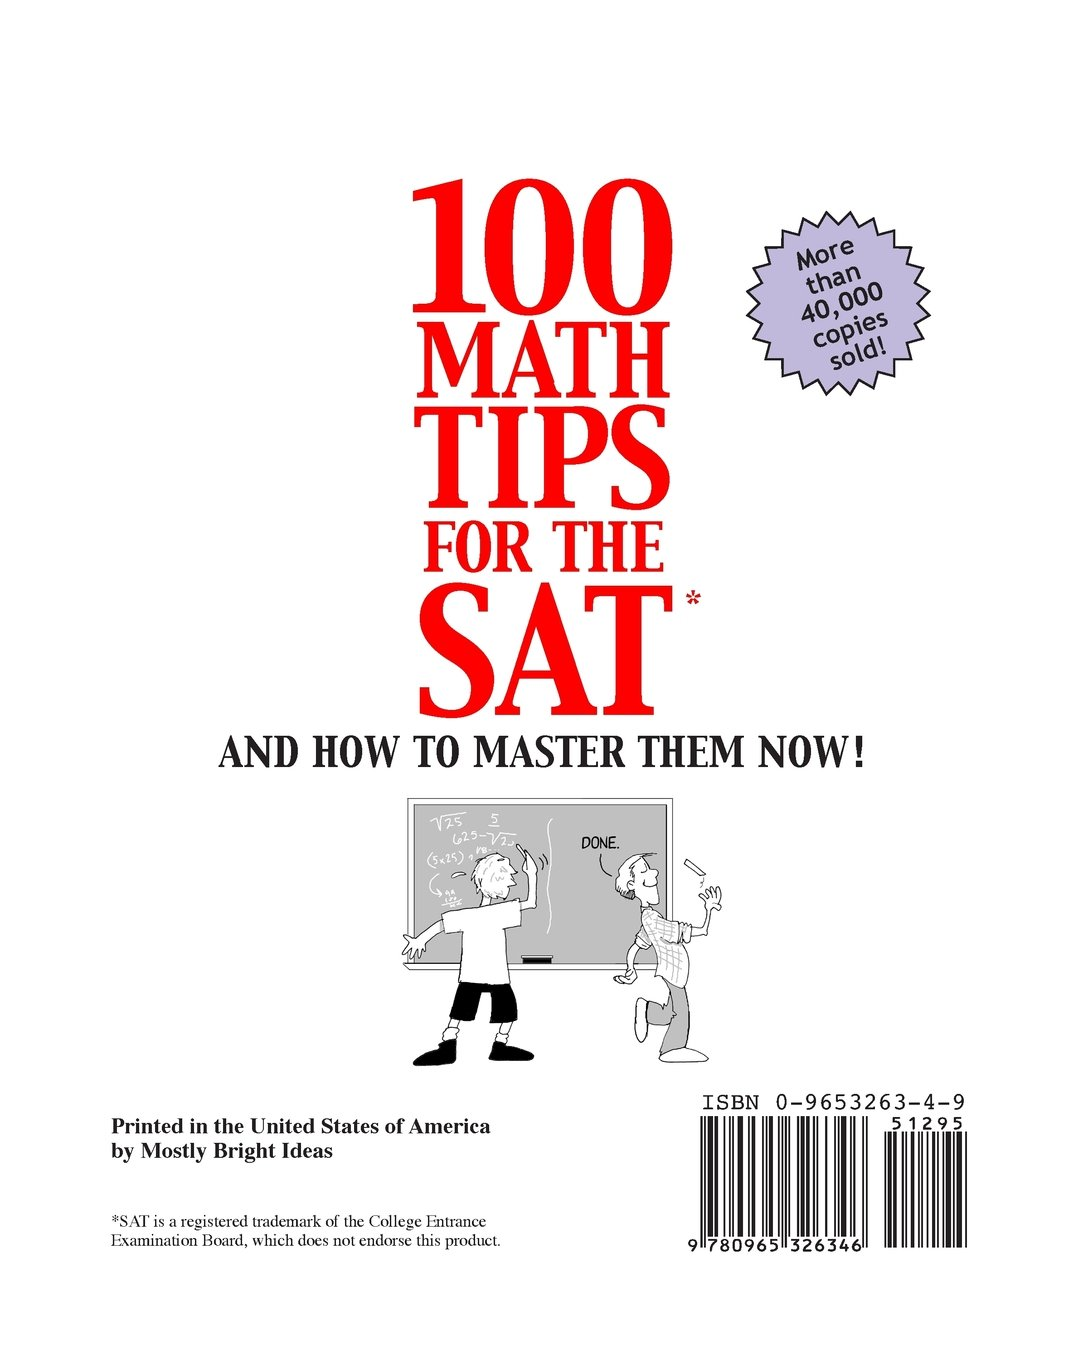 100 Math Tips for the SAT: And How to Master Them Now!: Charles Gulotta,  Trish Dardine: Amazon.com.mx: Libros